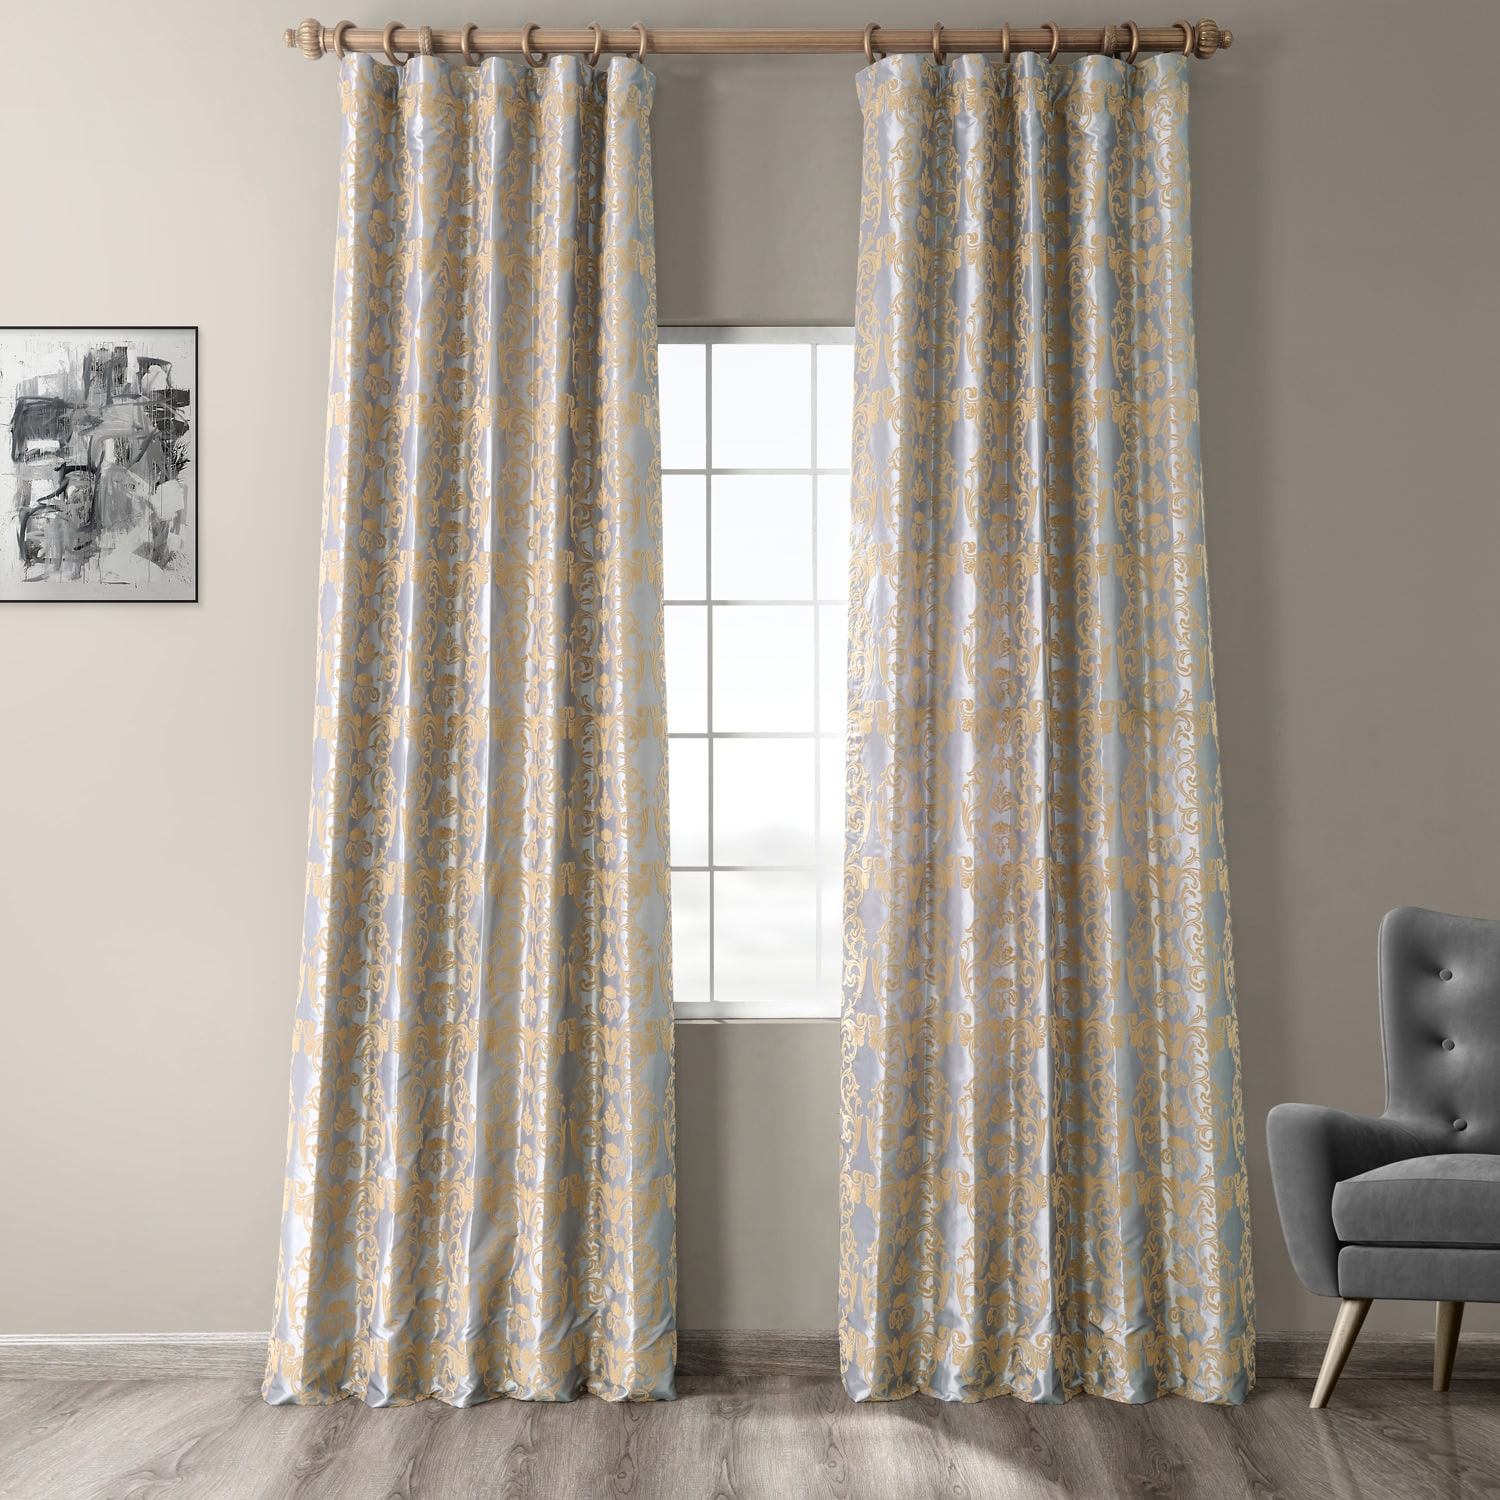 Firenze Silver & Gold Flocked Faux Silk Curtain